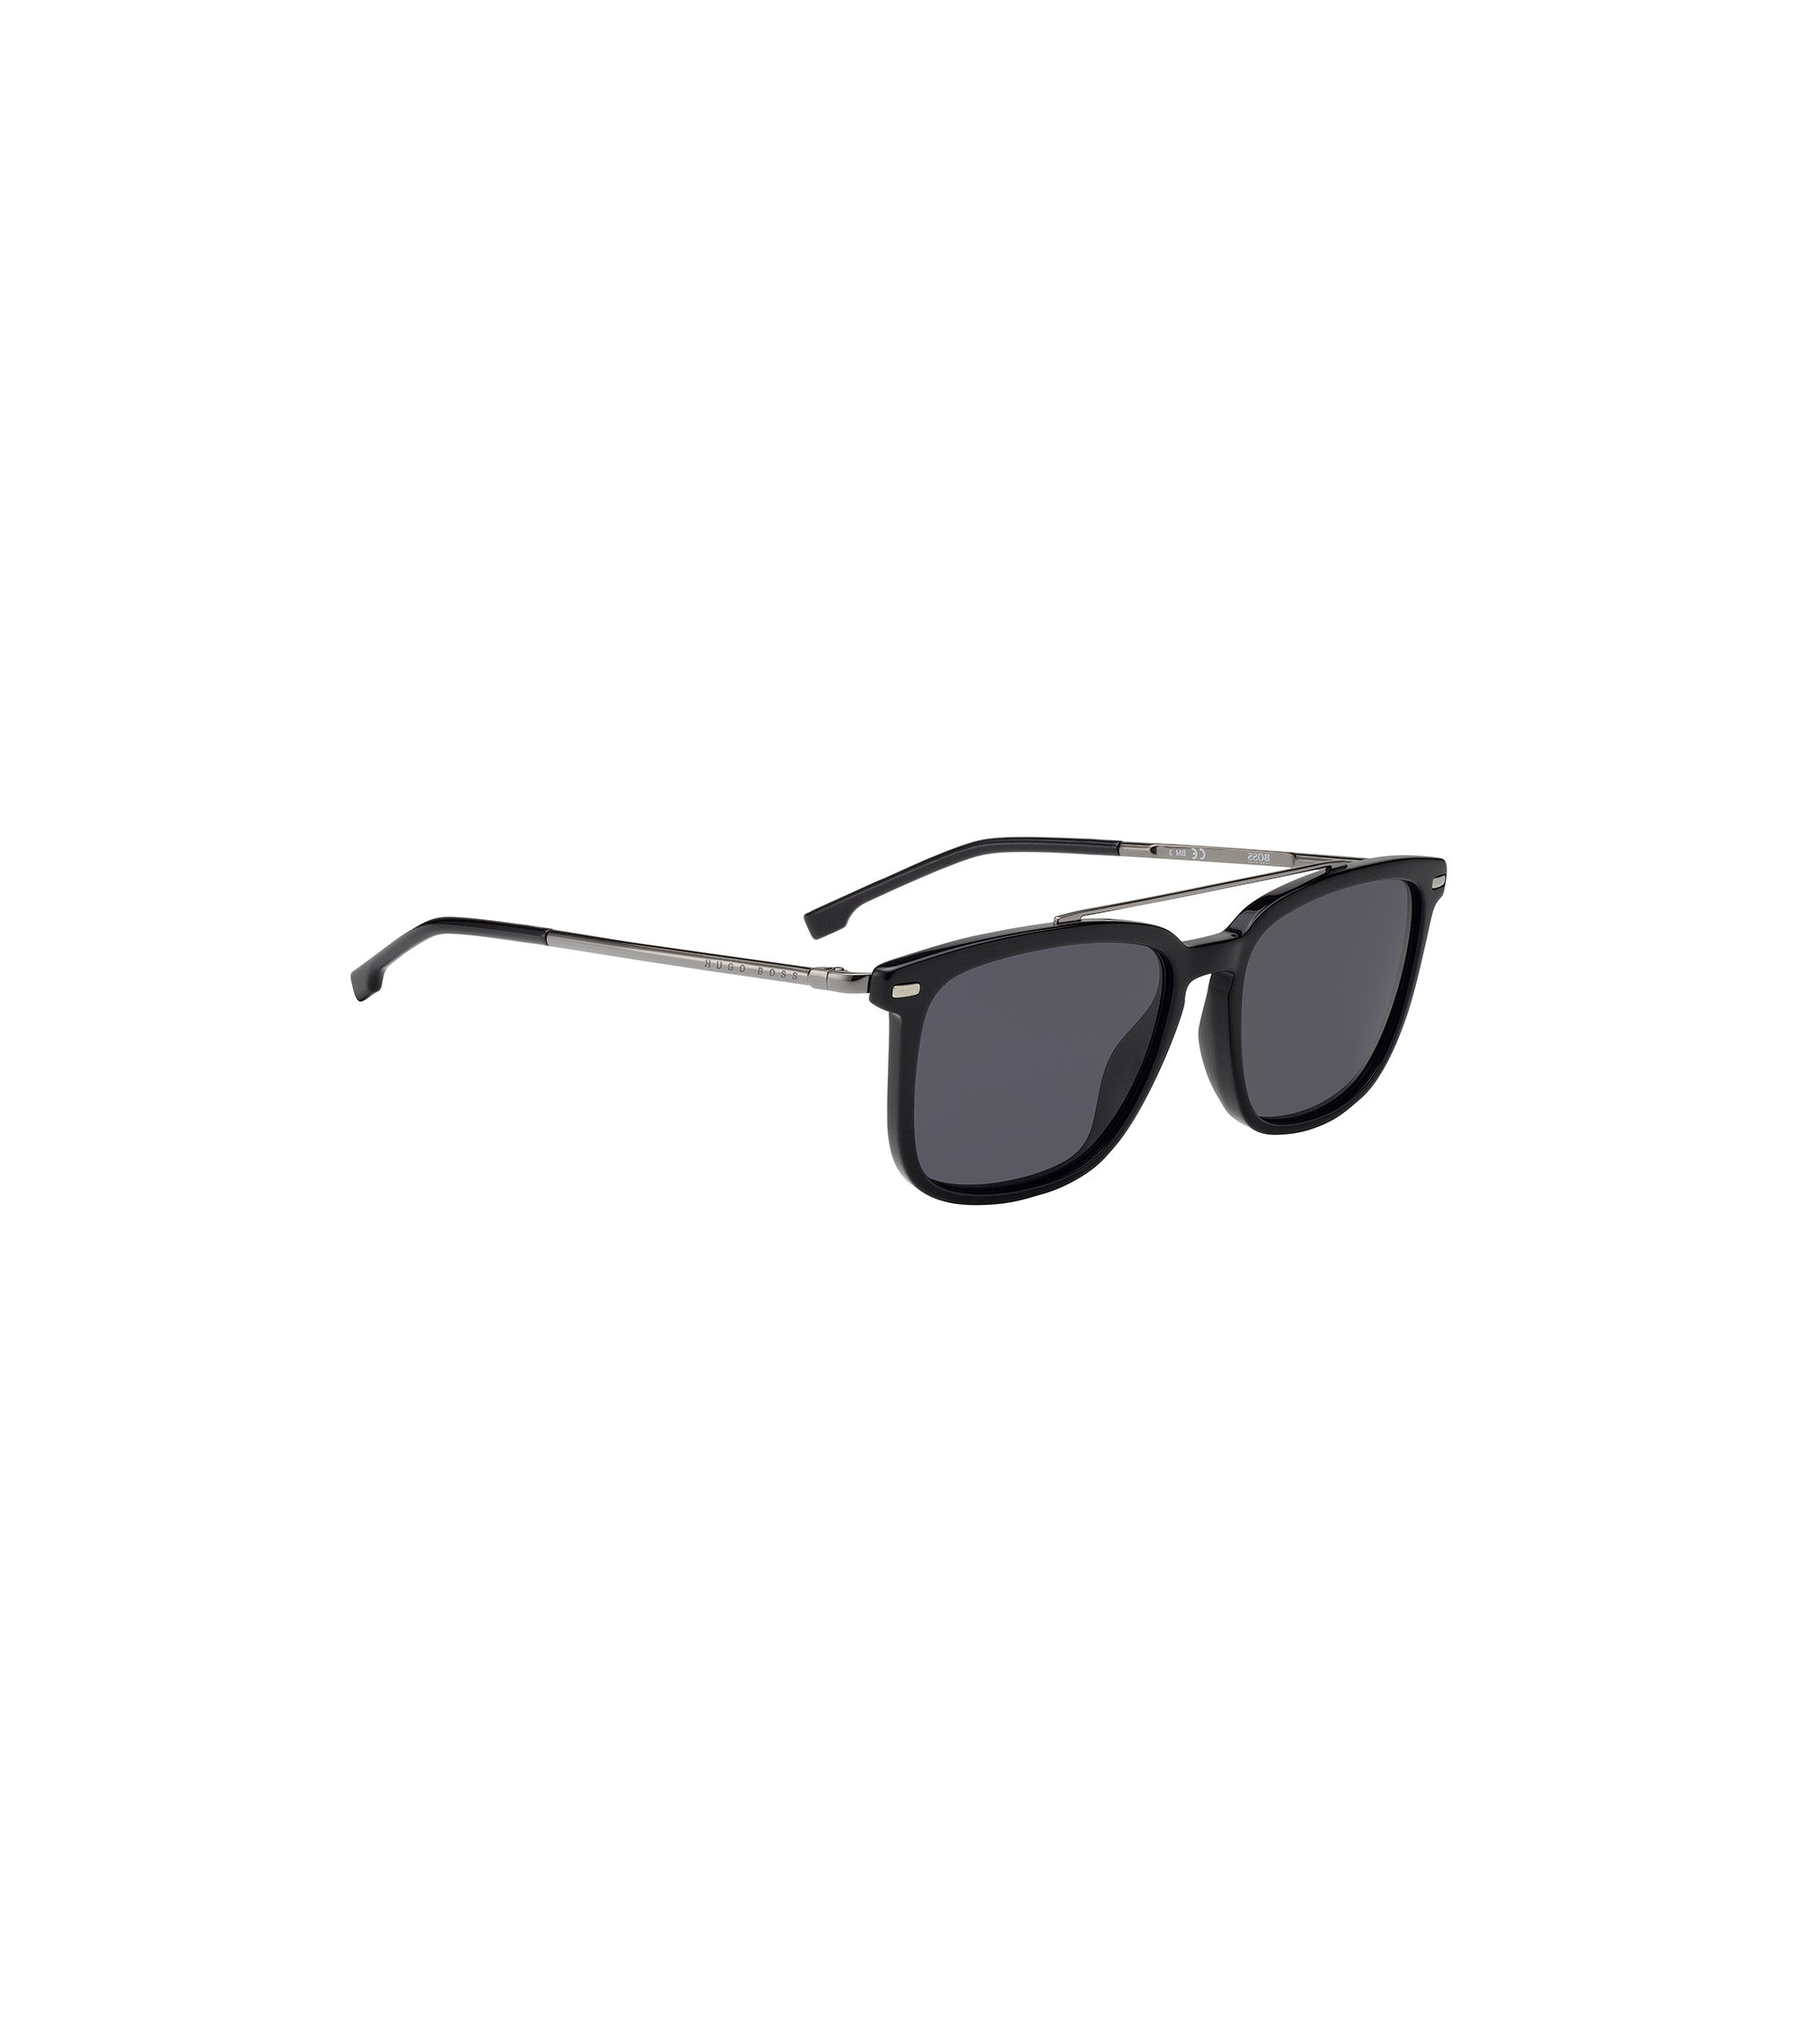 Ultralight sunglasses in metal and matte acetate, Assorted-Pre-Pack